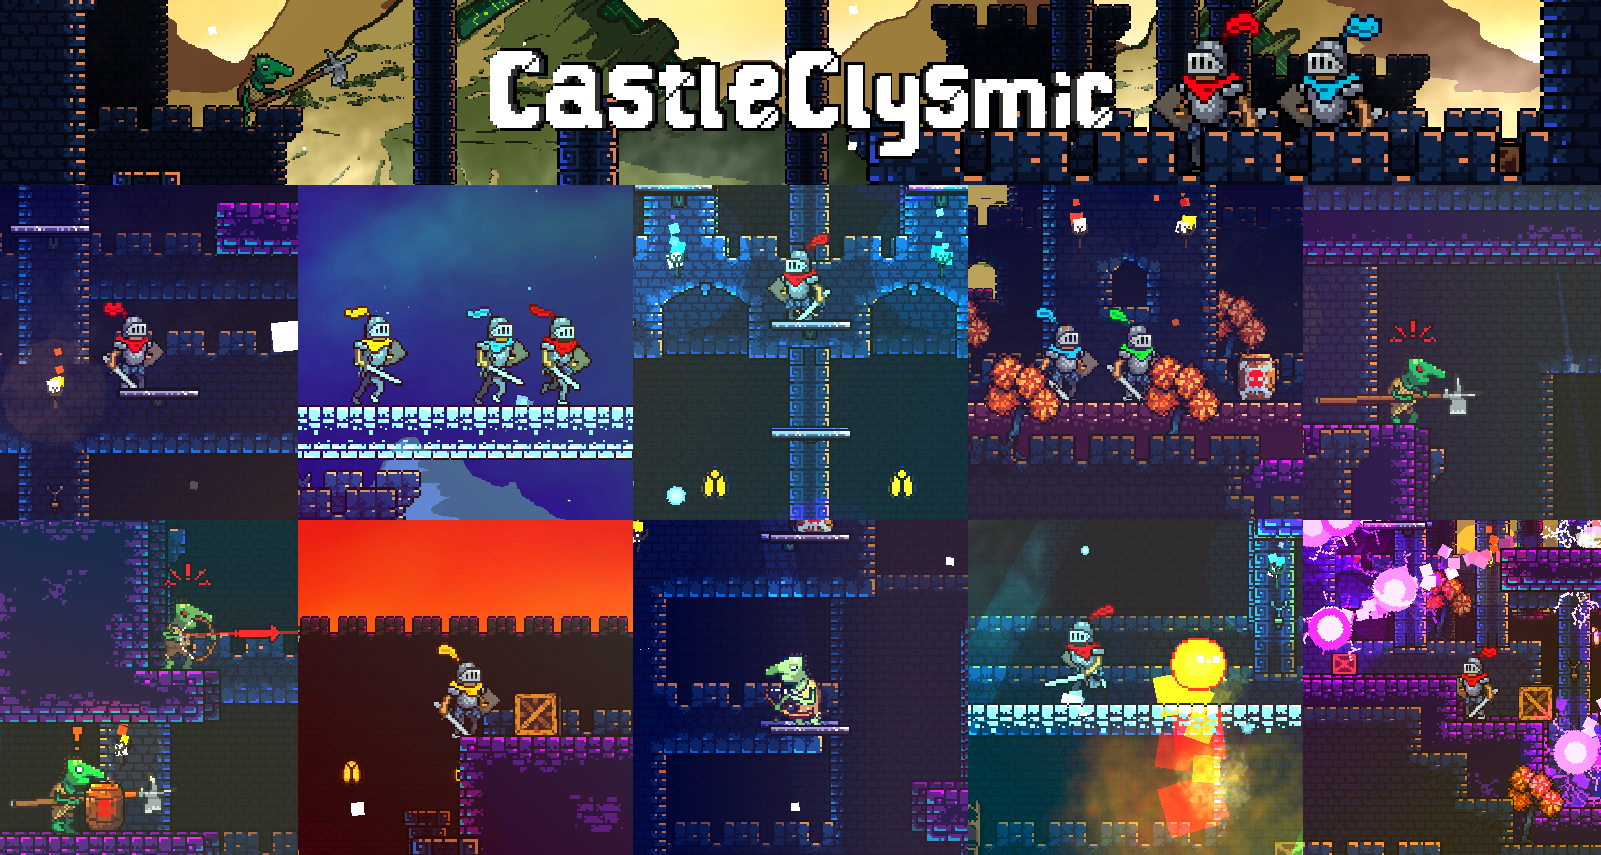 CastleClysmic